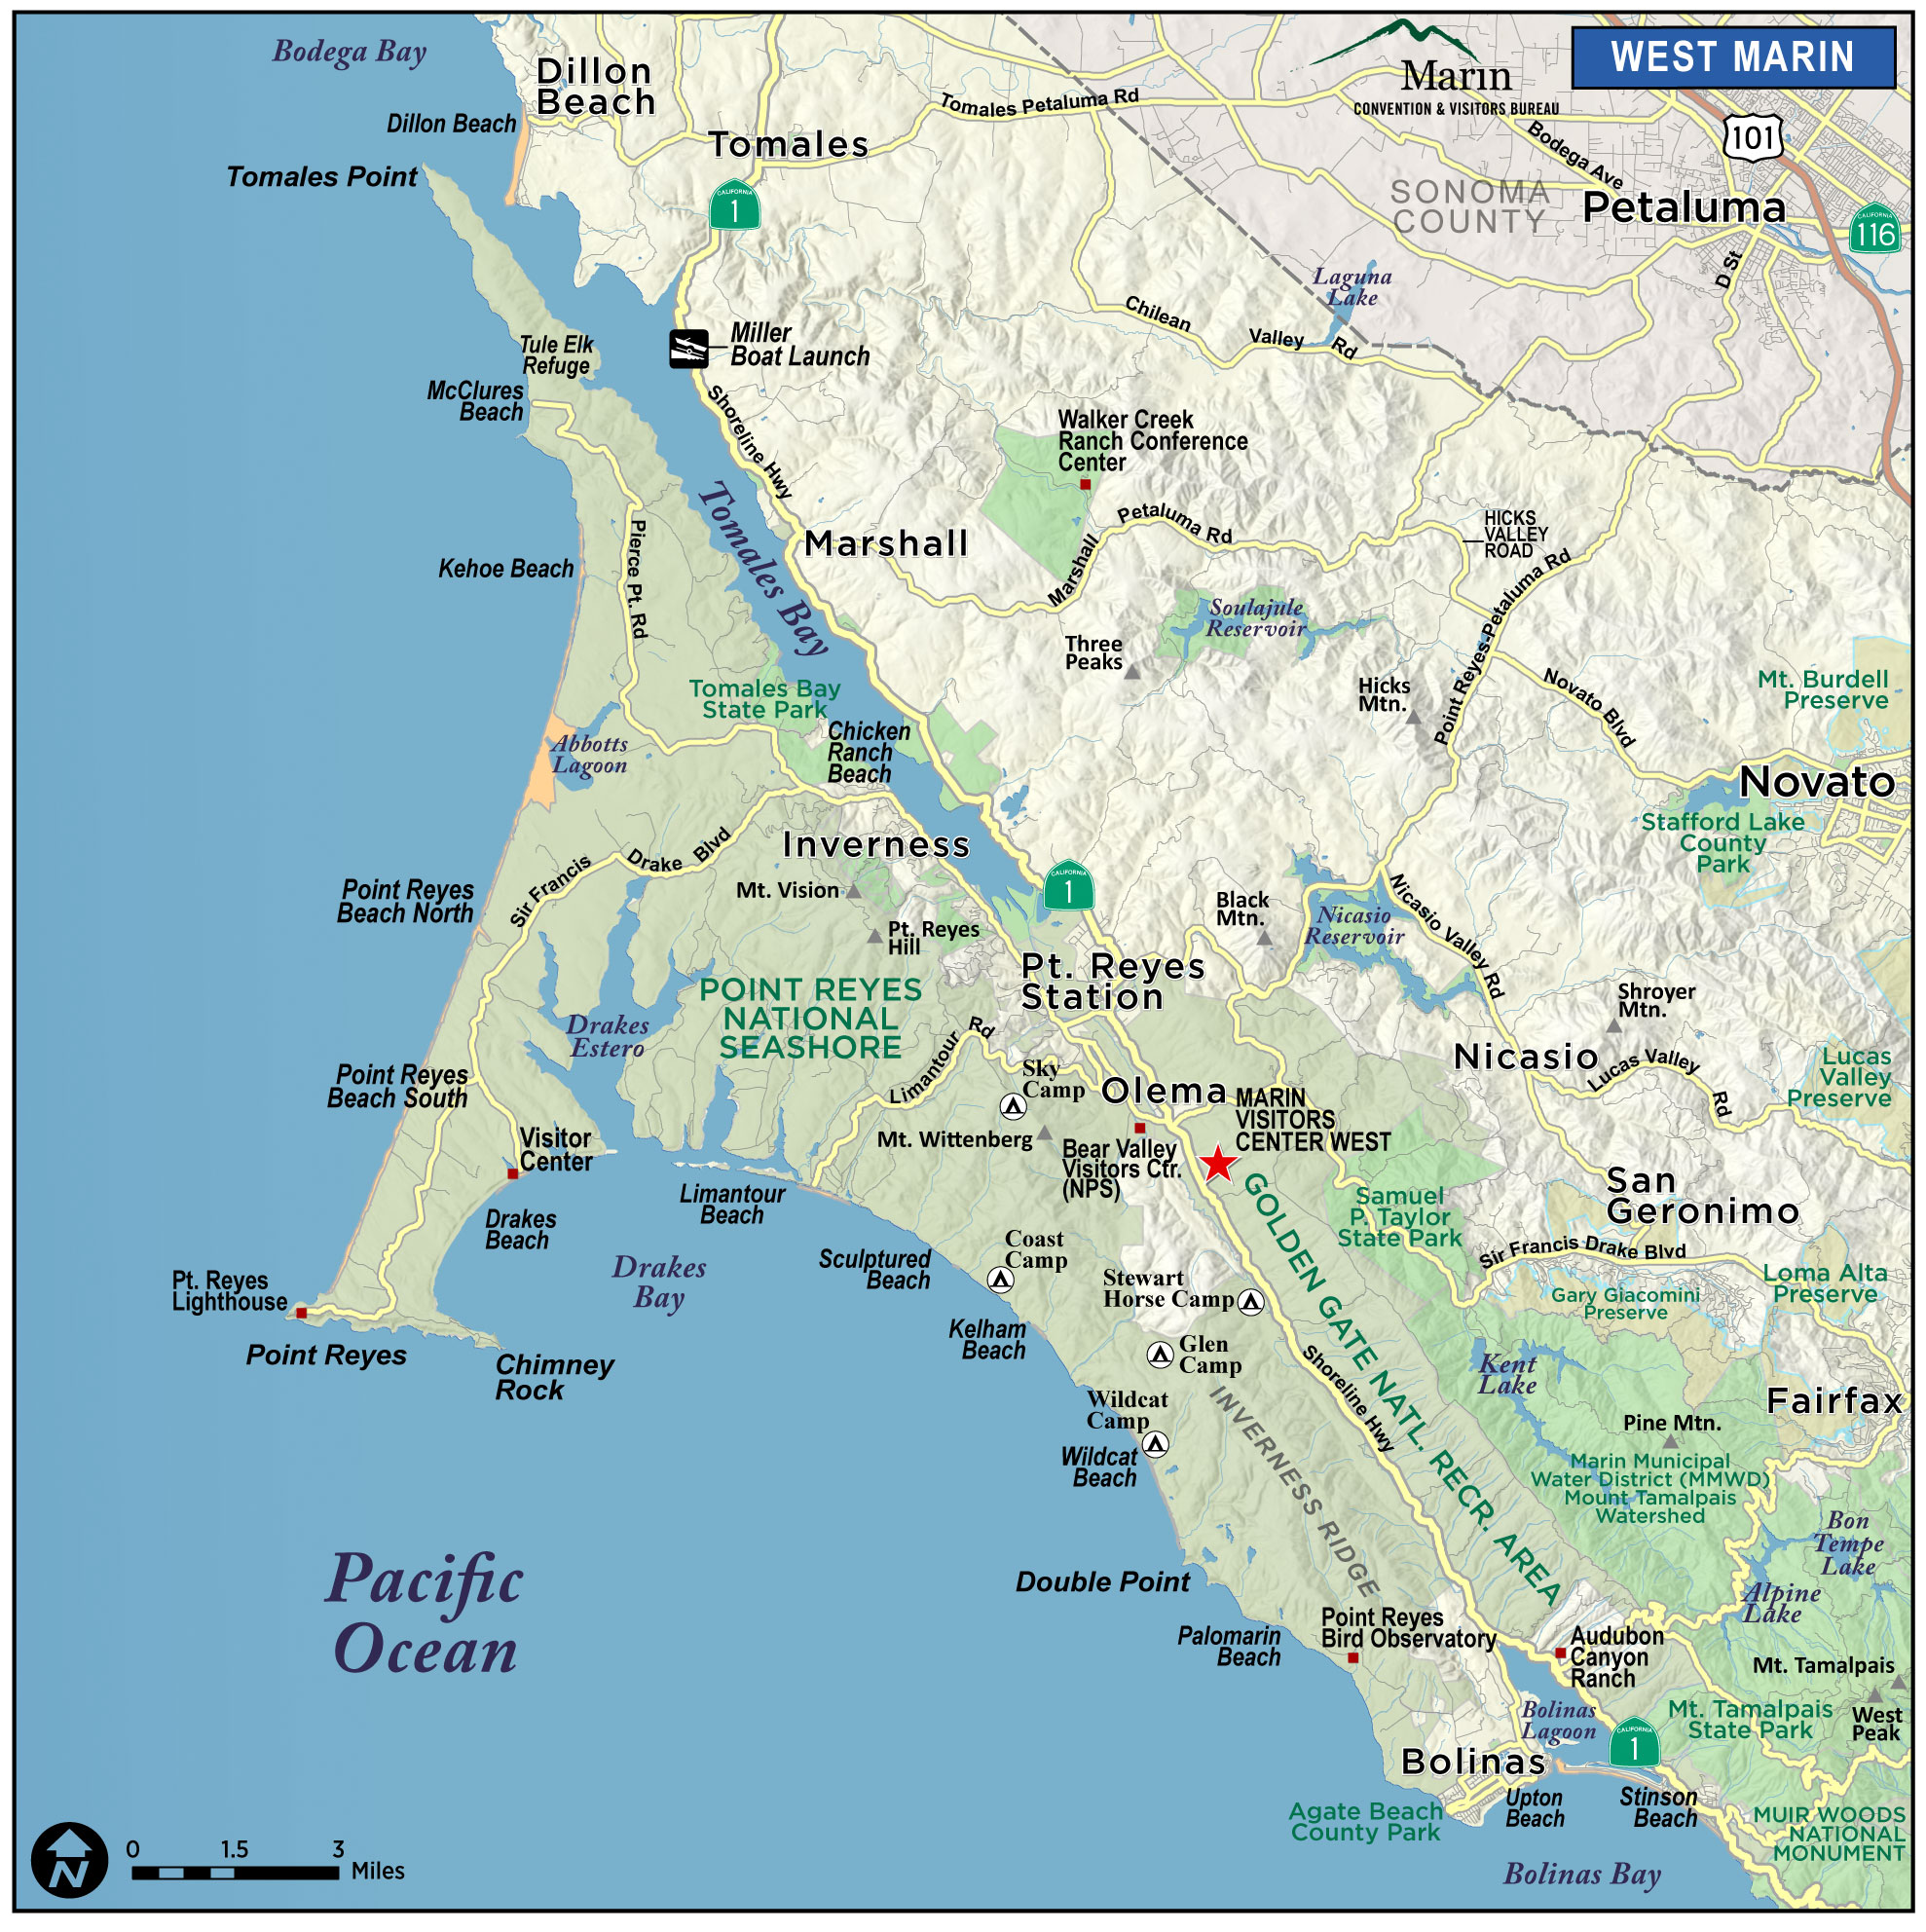 redwood national park map with Map Of Marin And Directions on Muir Woods National Park as well Map Of Marin And Directions furthermore  in addition 6156596765 together with Forest Park Map.